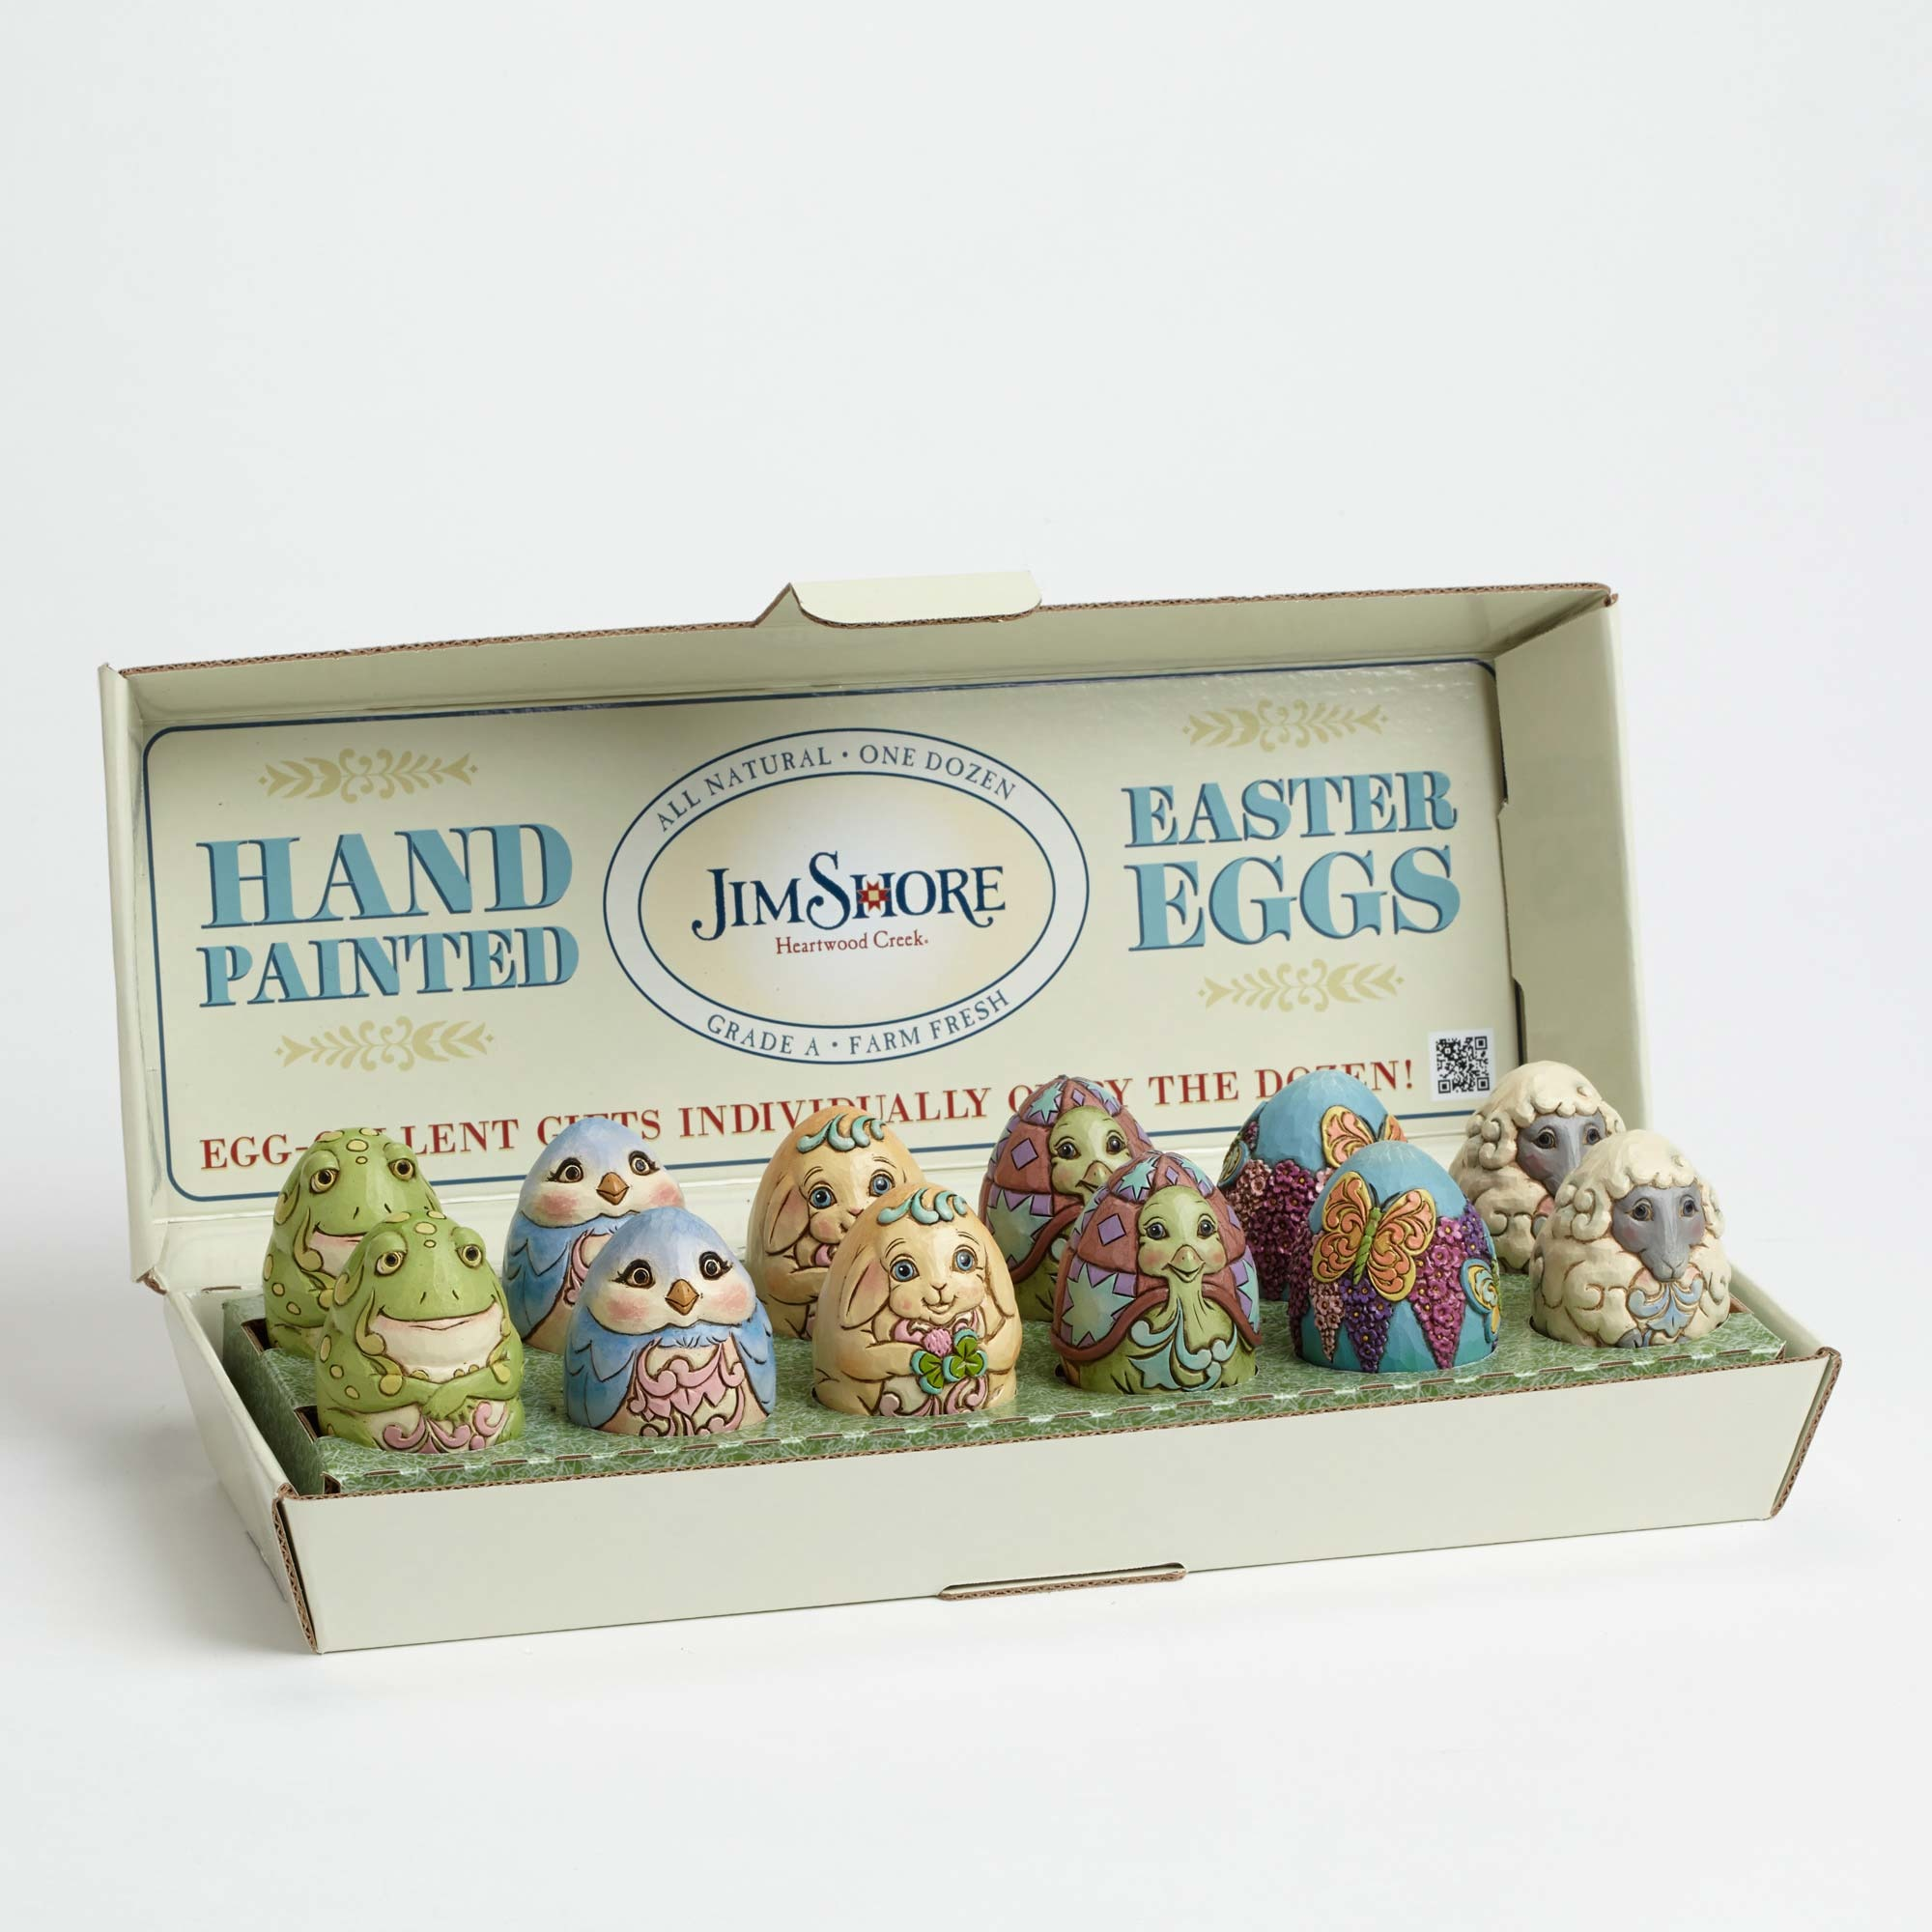 New box truck heartwood manufacturing - Enesco Jim Shore Easter Cardboard Decorative Egg Carton Display Box Only Cd 01